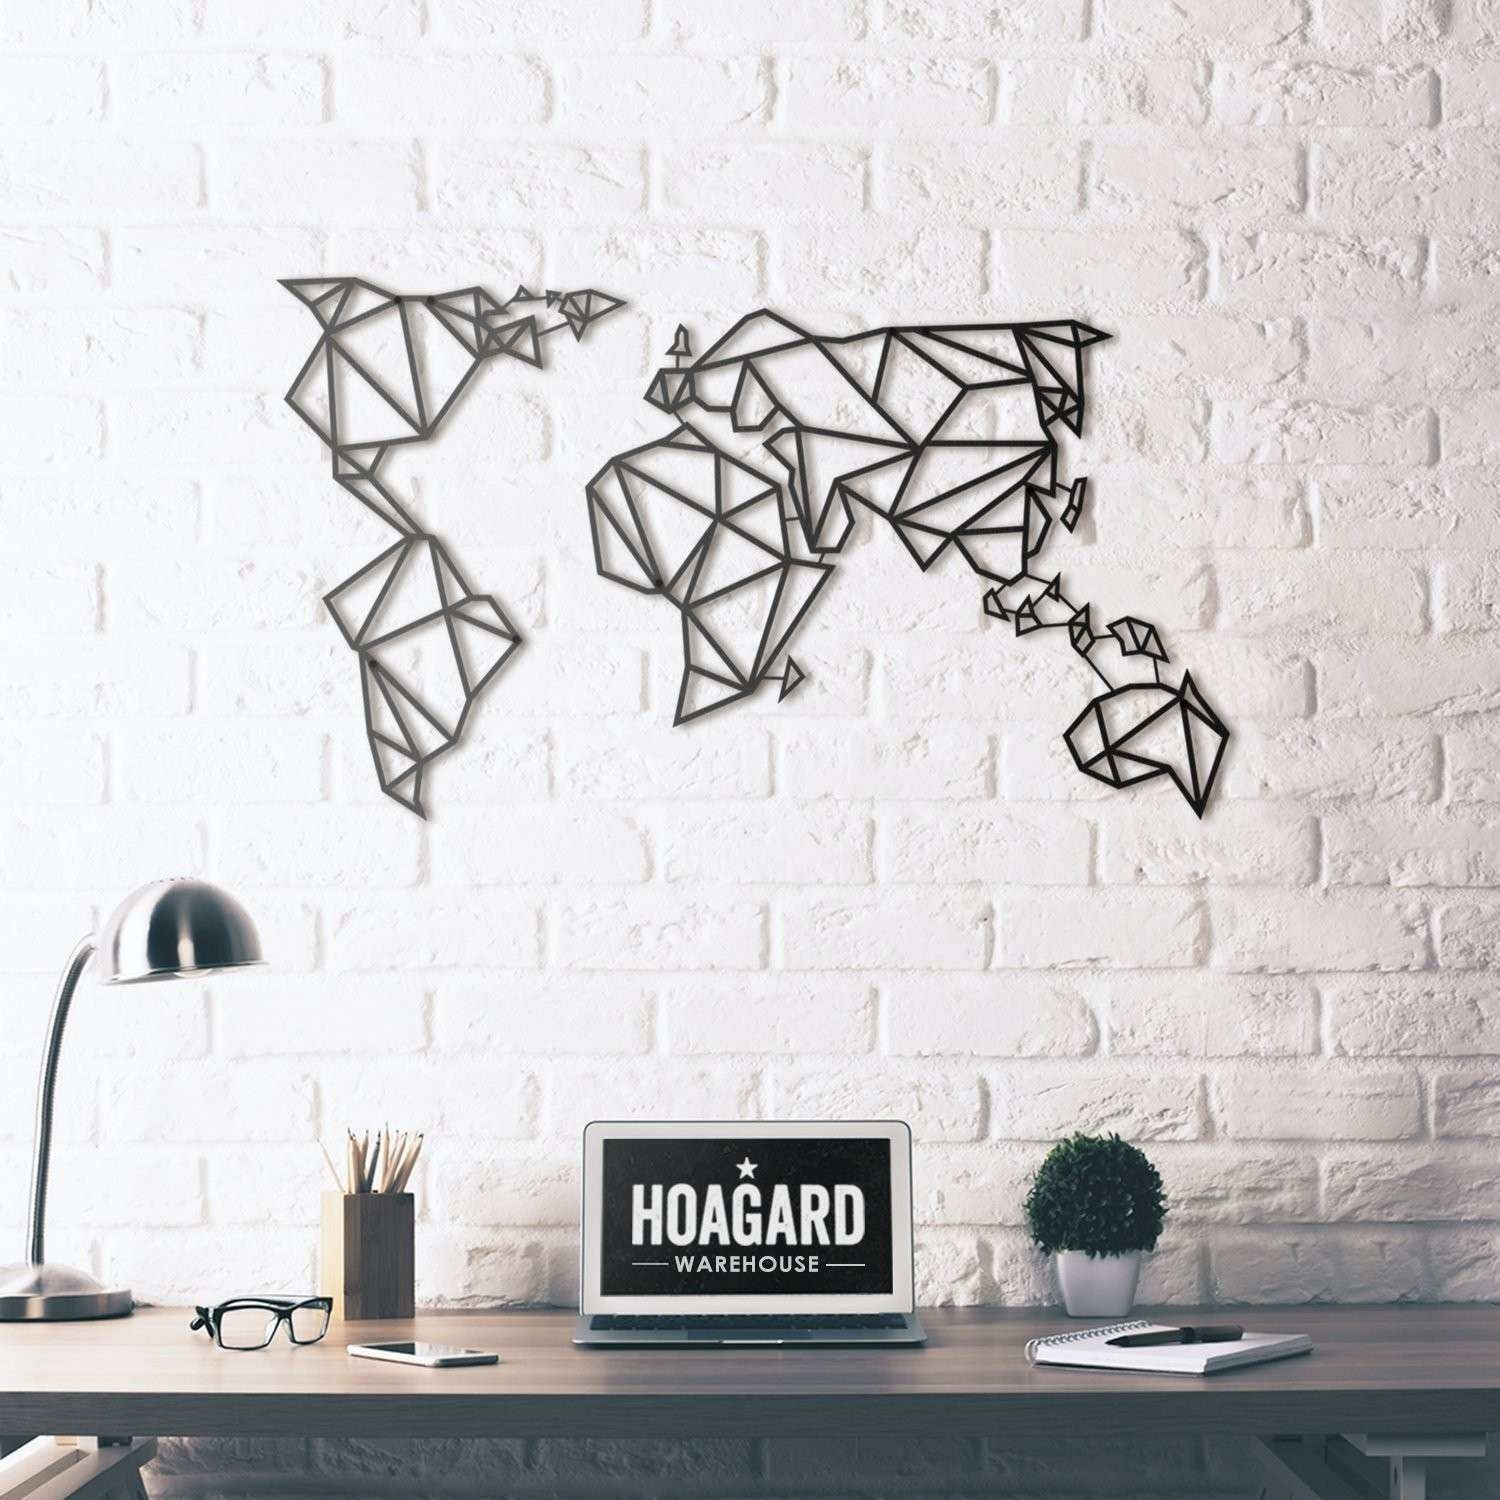 World Map Metal Wall Art Lovely Metal Wall Art World Map Hoagard Of With Regard To Cool Map Wall Art (View 16 of 20)